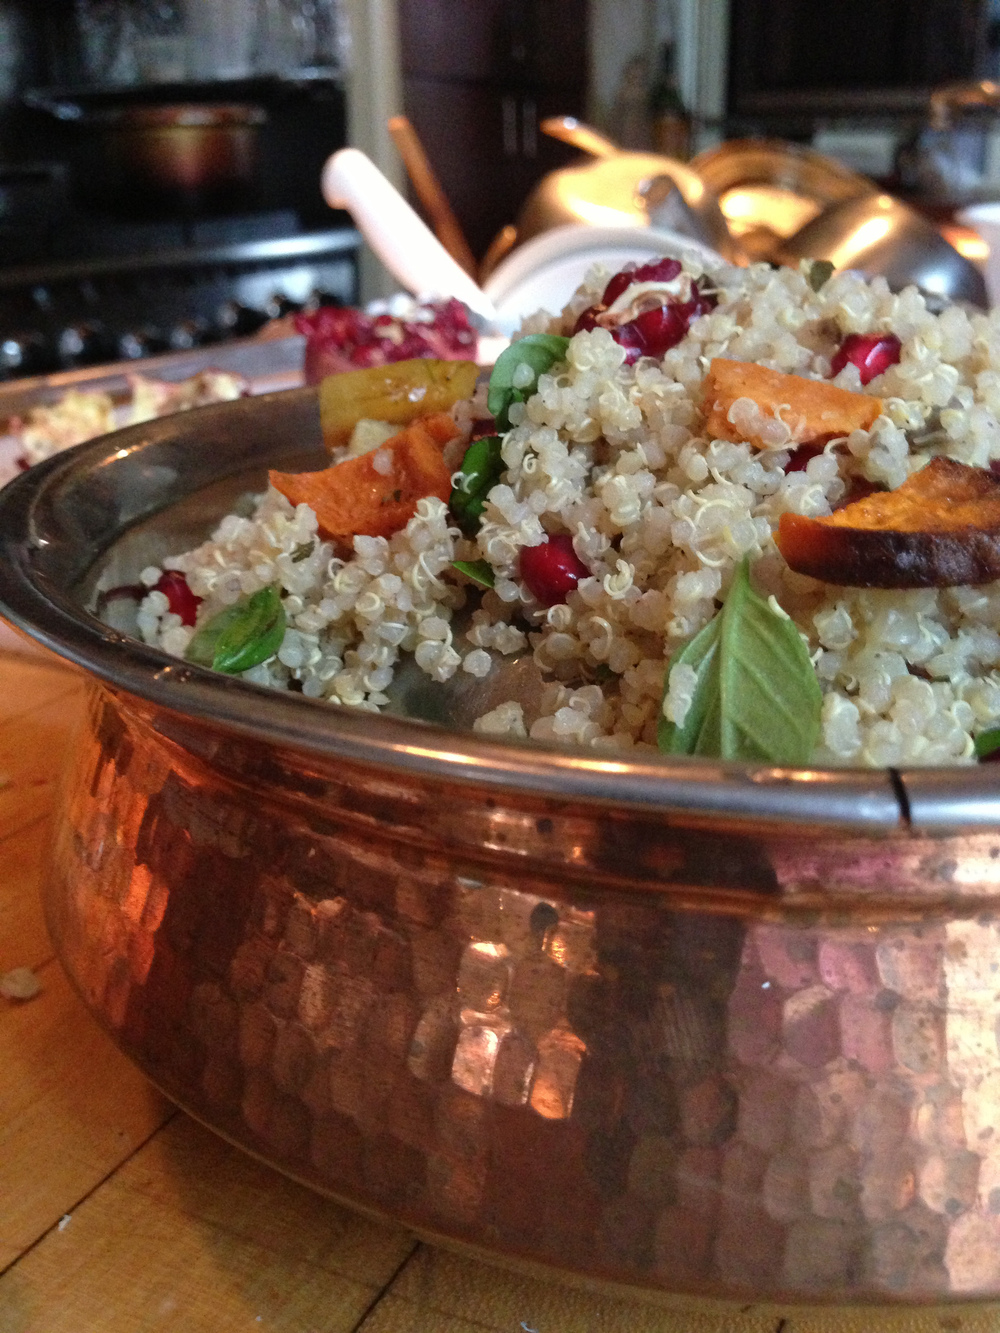 Pearls of quinoa toss with three types of yam and roasted rainbow carrots.